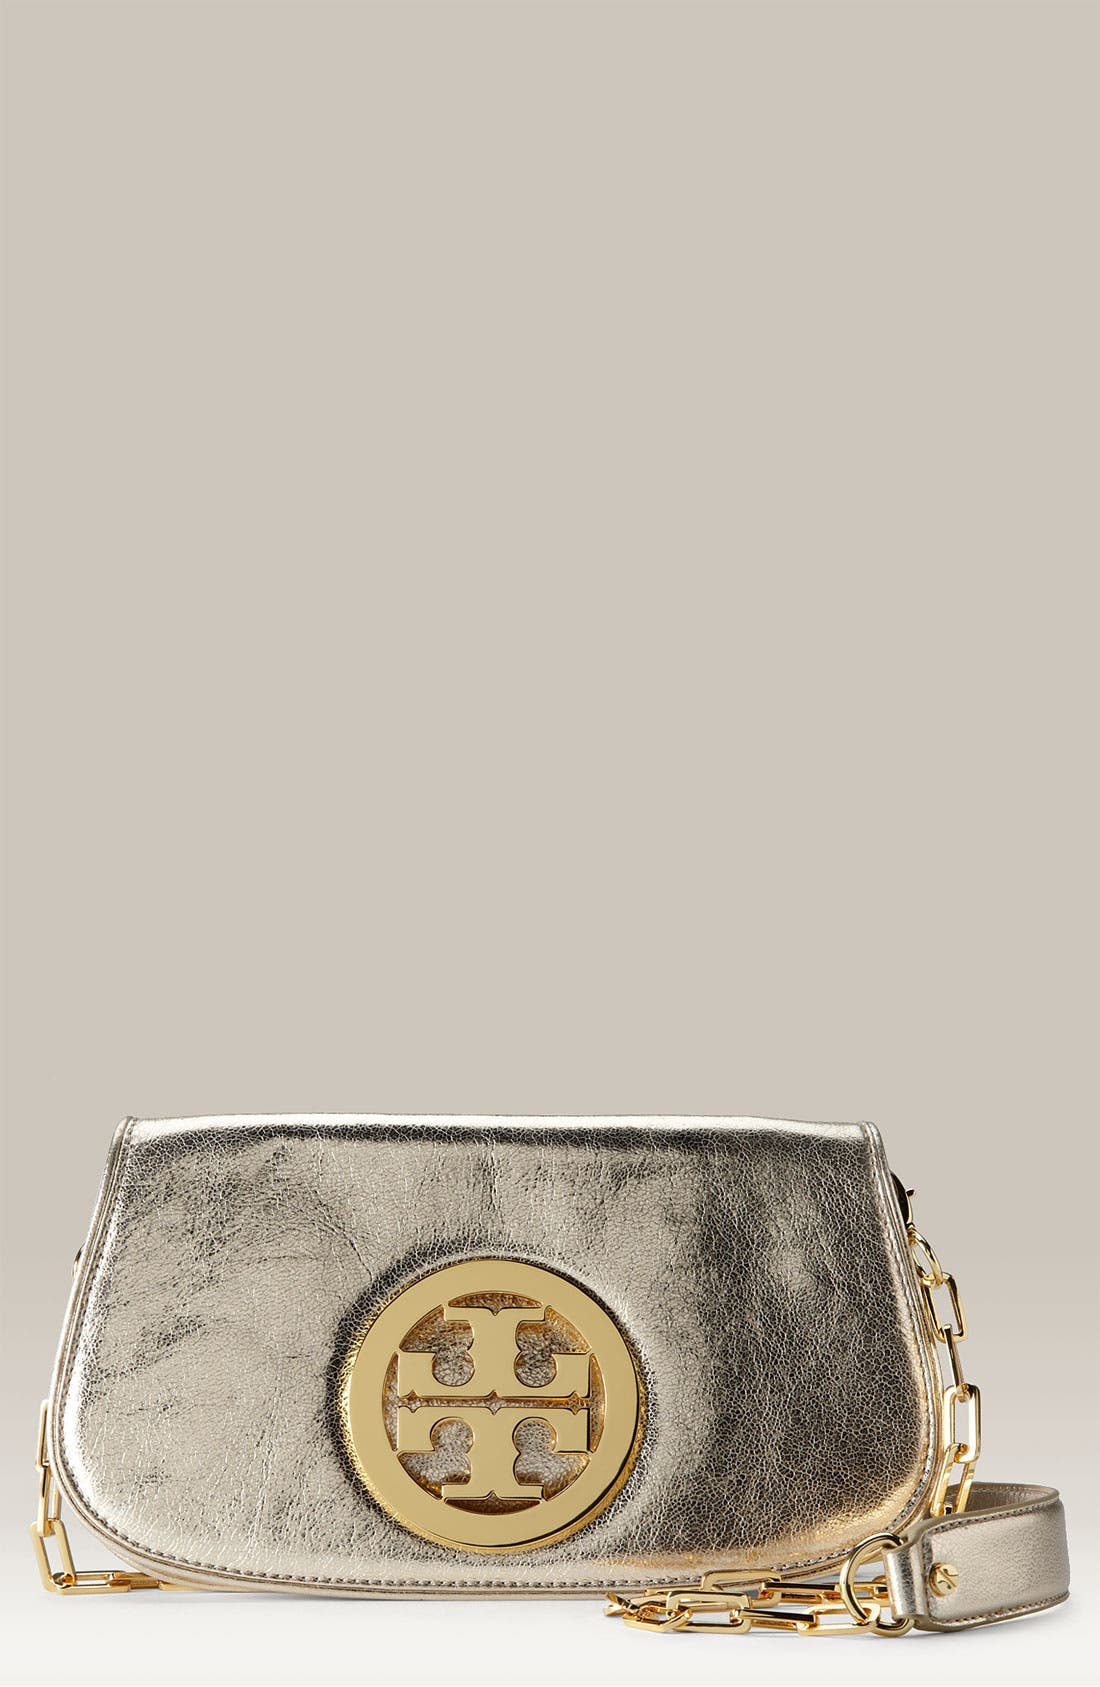 Alternate Image 1 Selected - Tory Burch Logo Flap Clutch